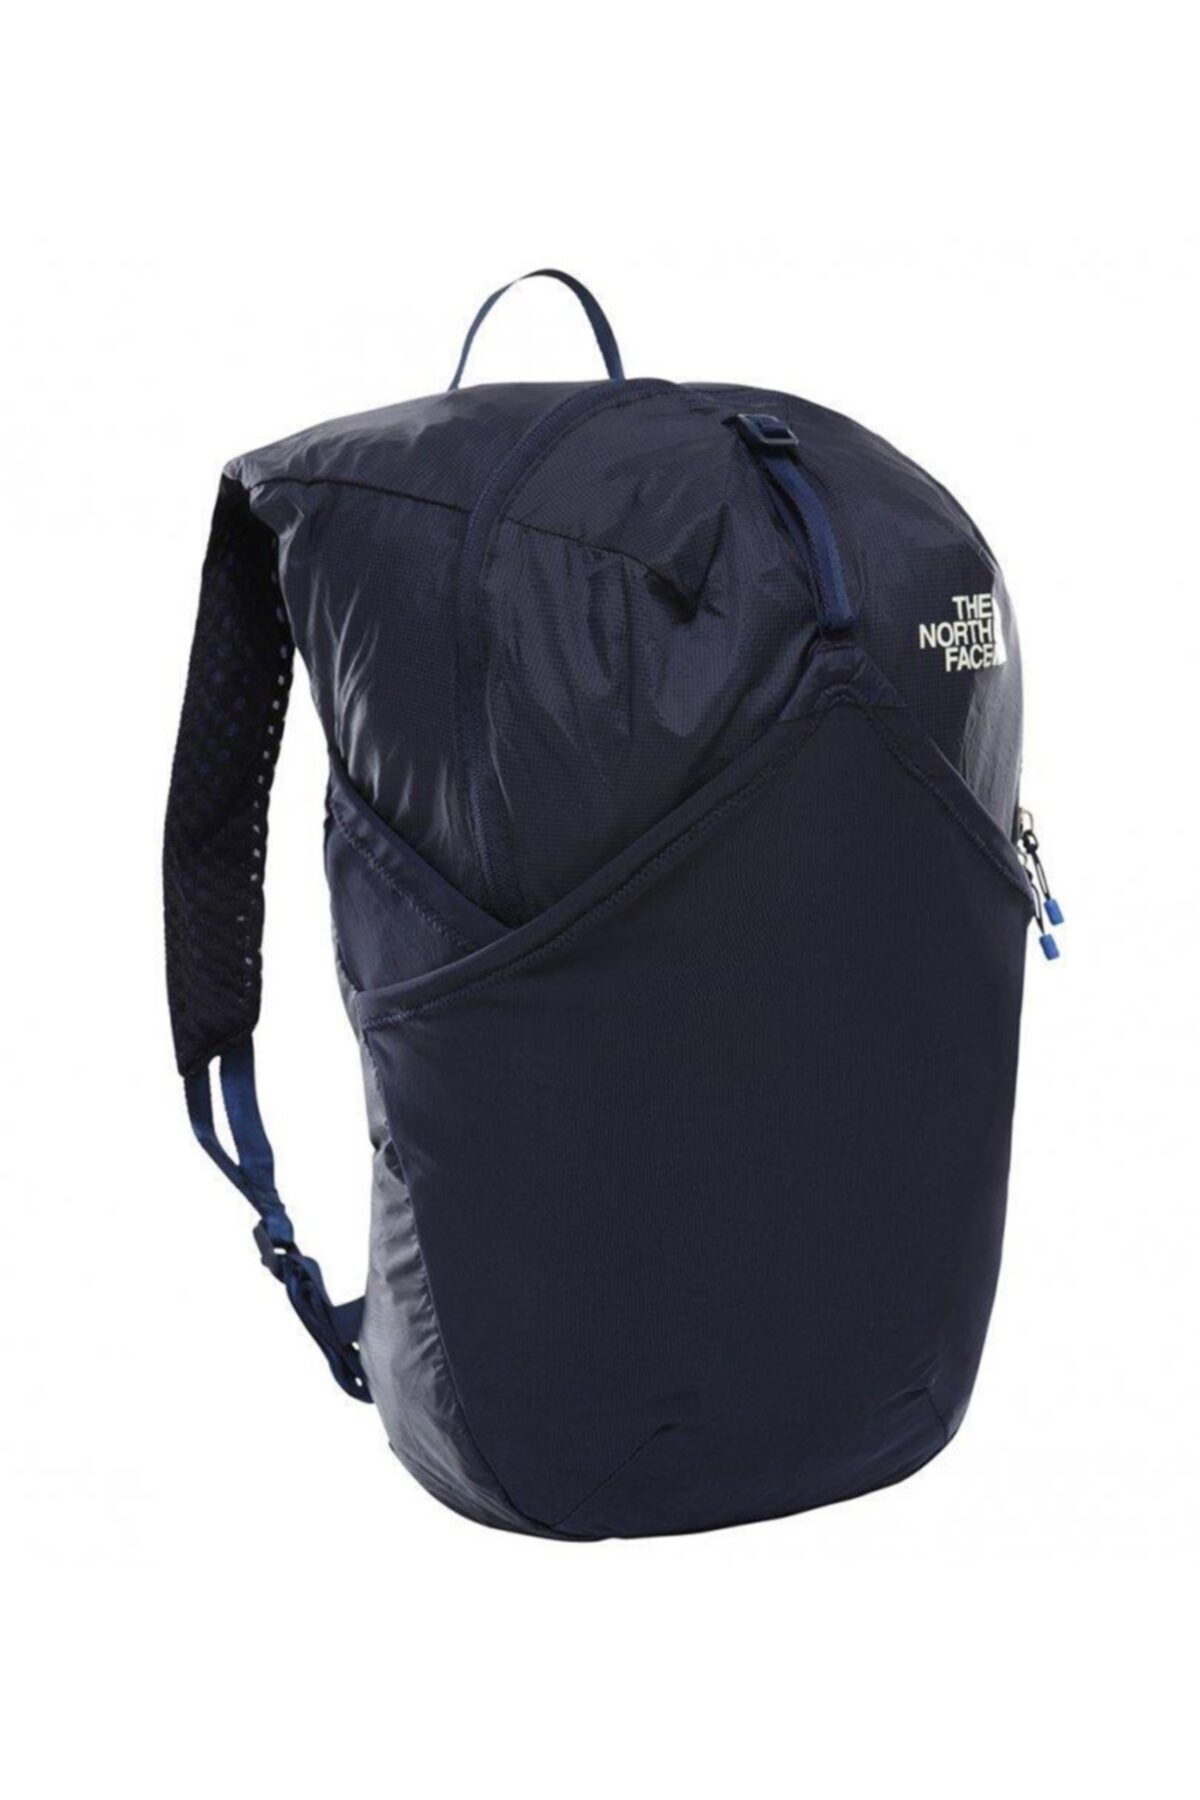 THE NORTH FACE Flyweight Pack Nf0A3Kwrfj61 1